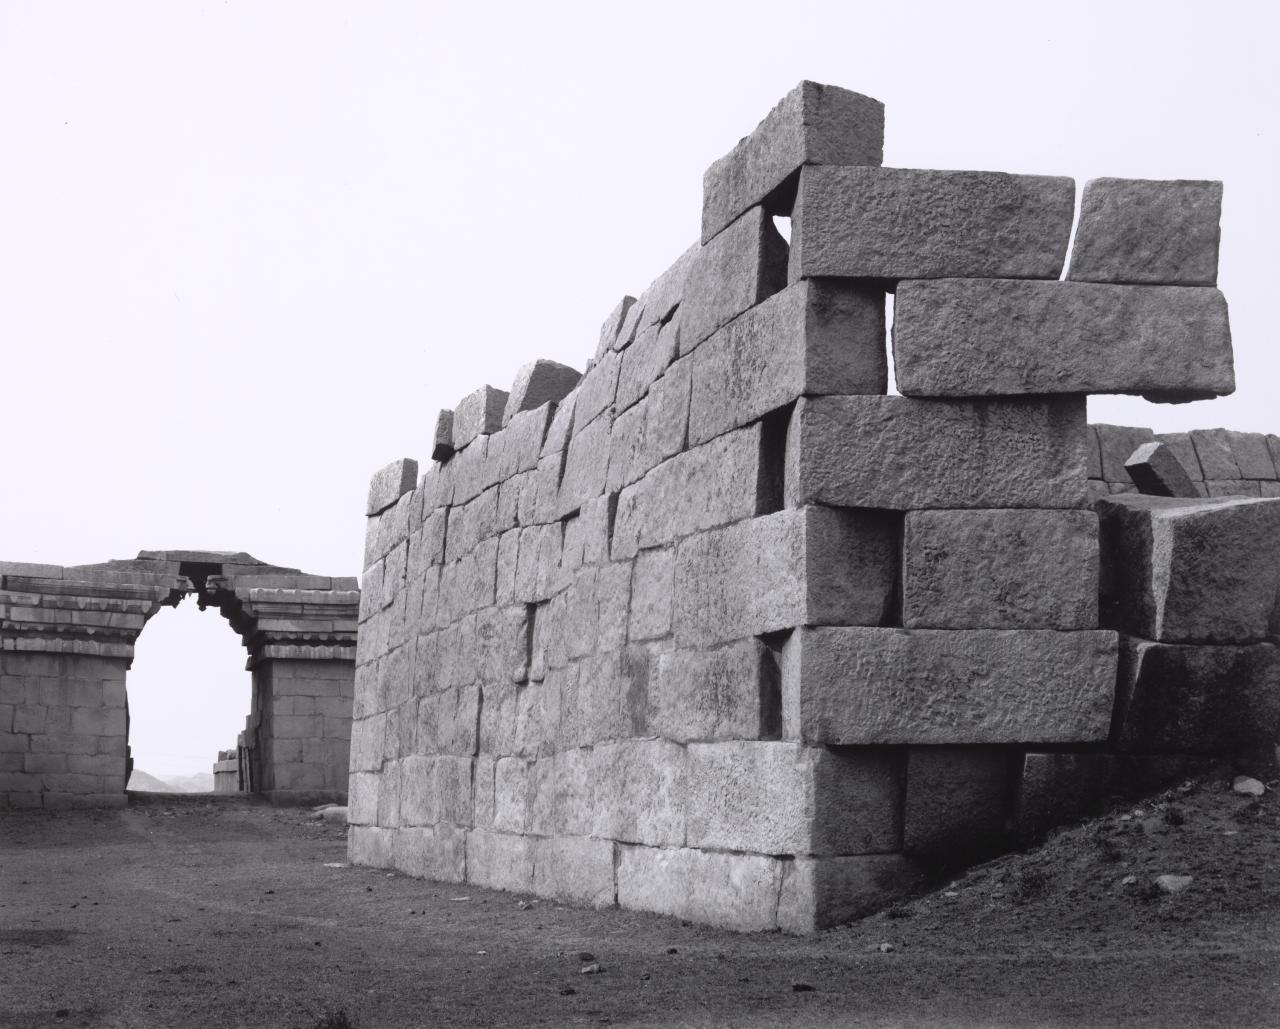 Bhima's gateway with Barbican walls